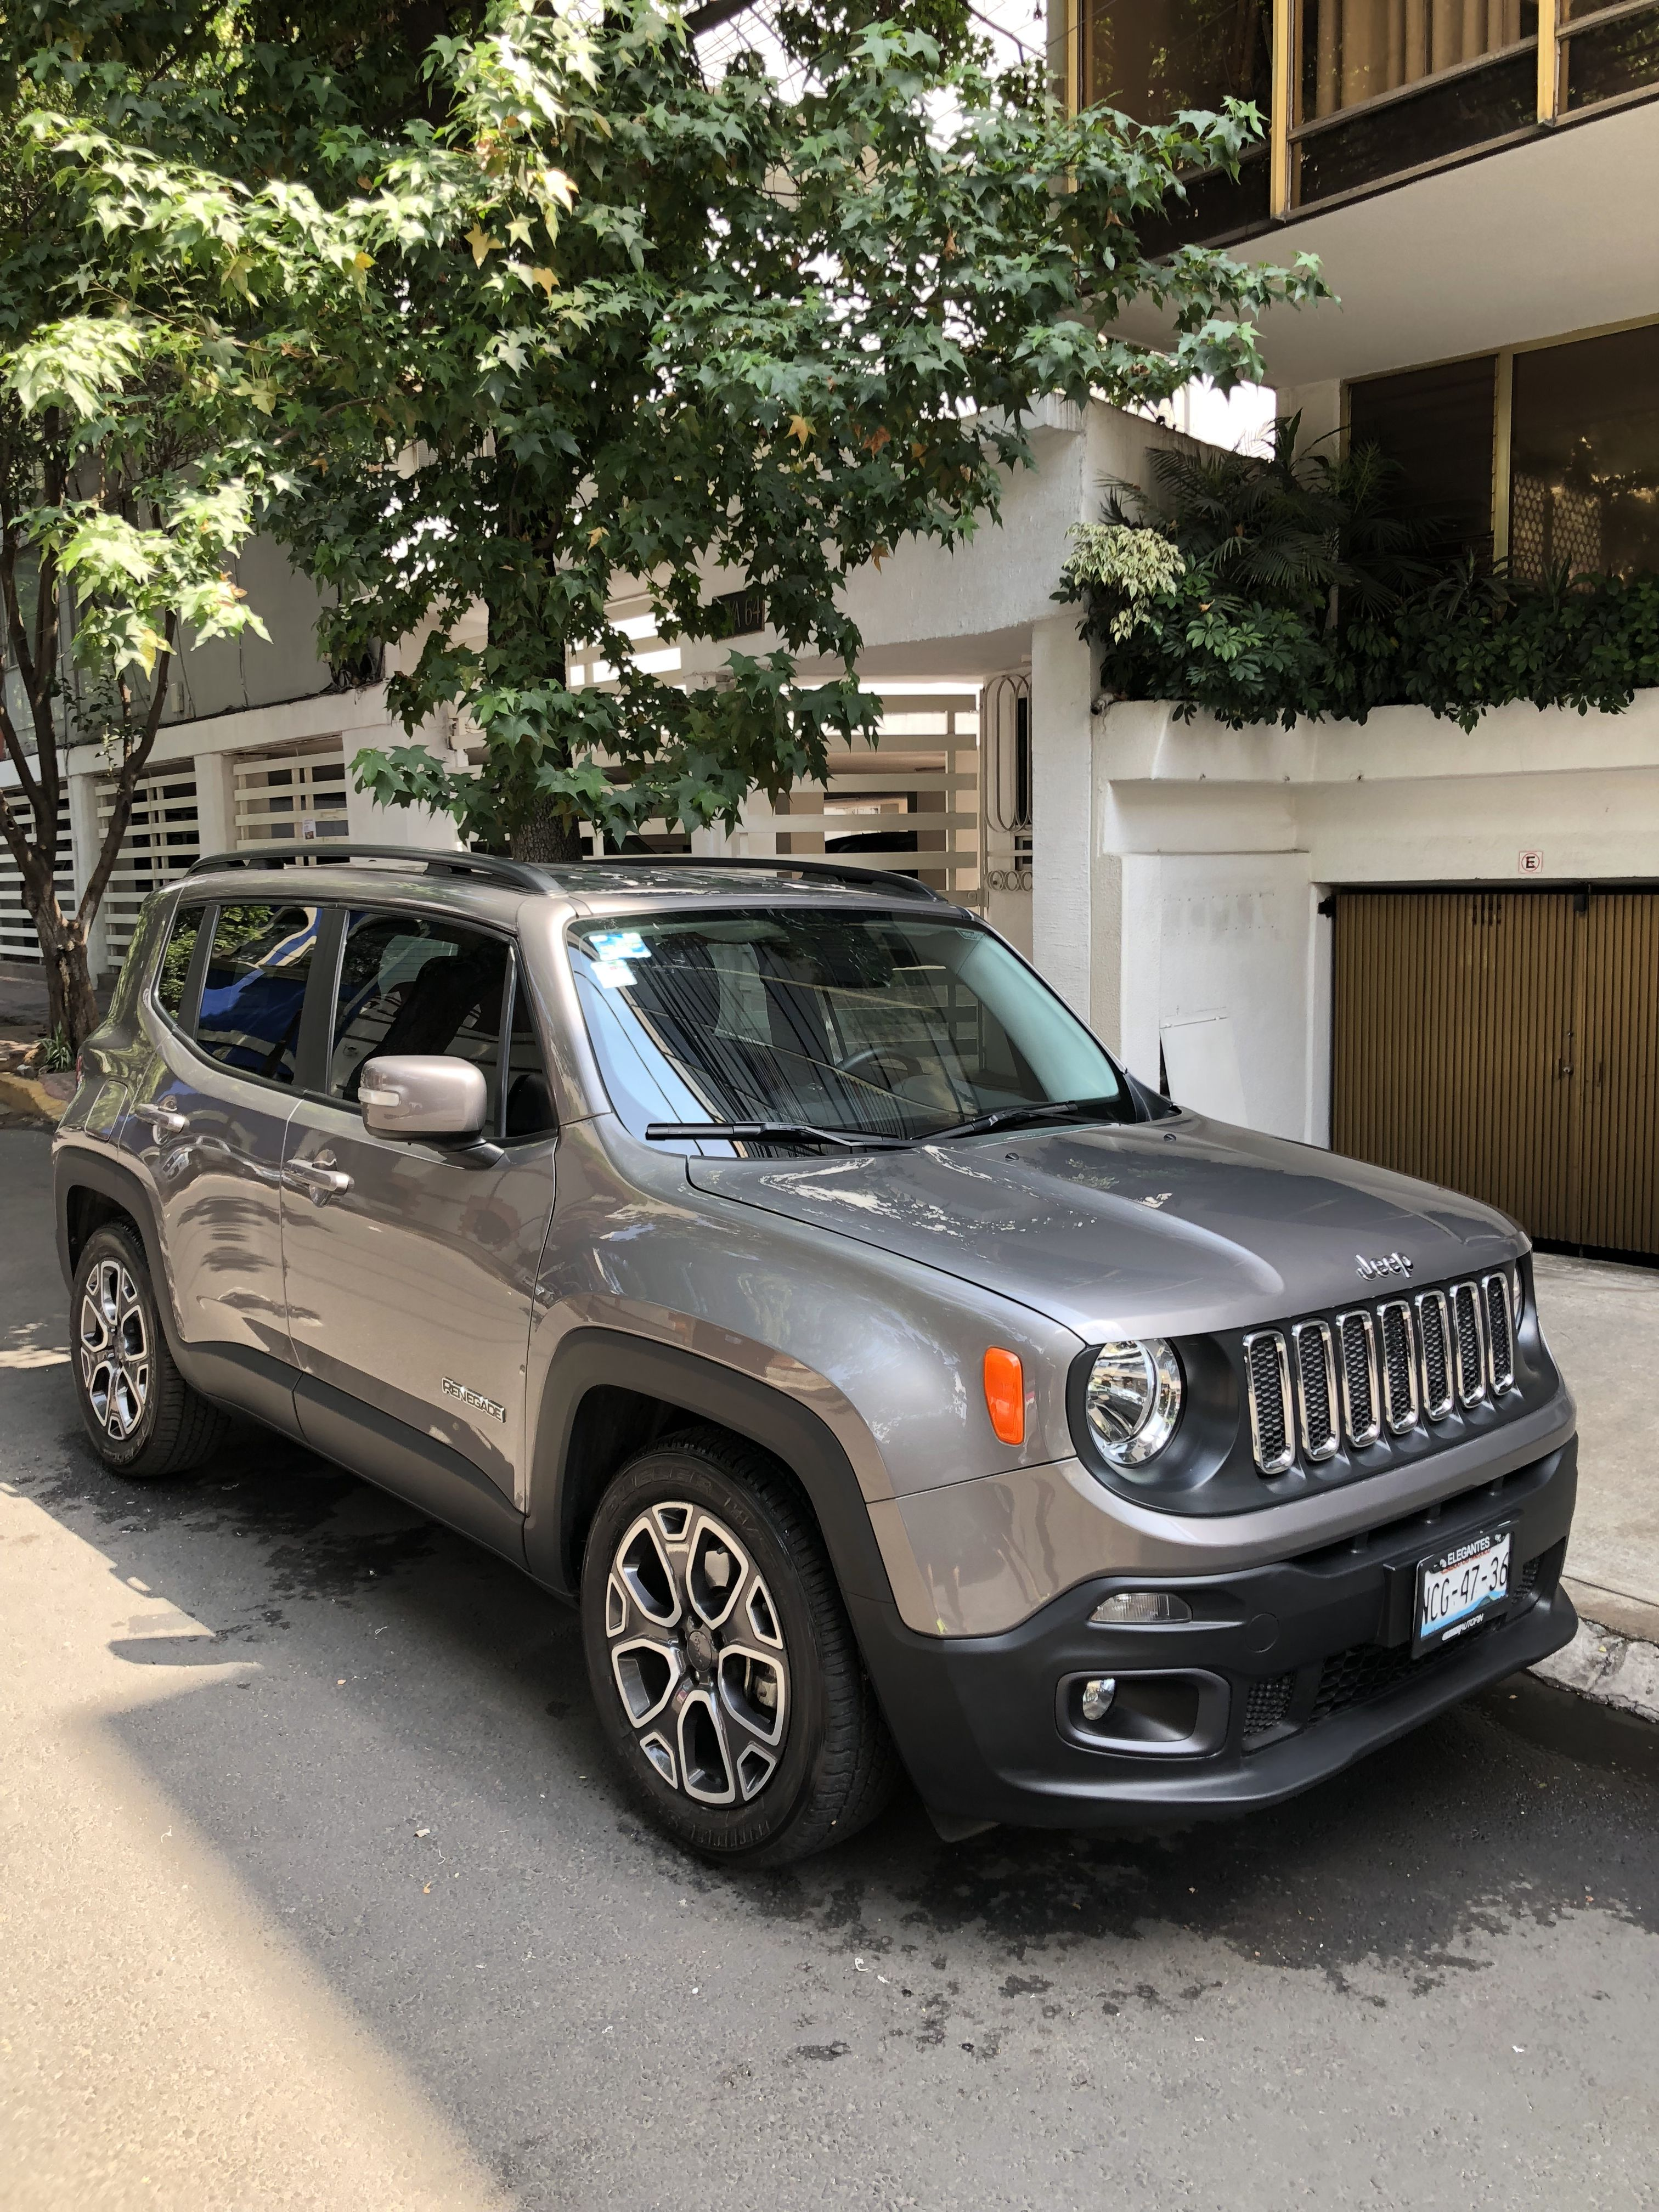 Pin By Amanda Marie On Cars Jeep Renegade Dream Cars Jeep Lover